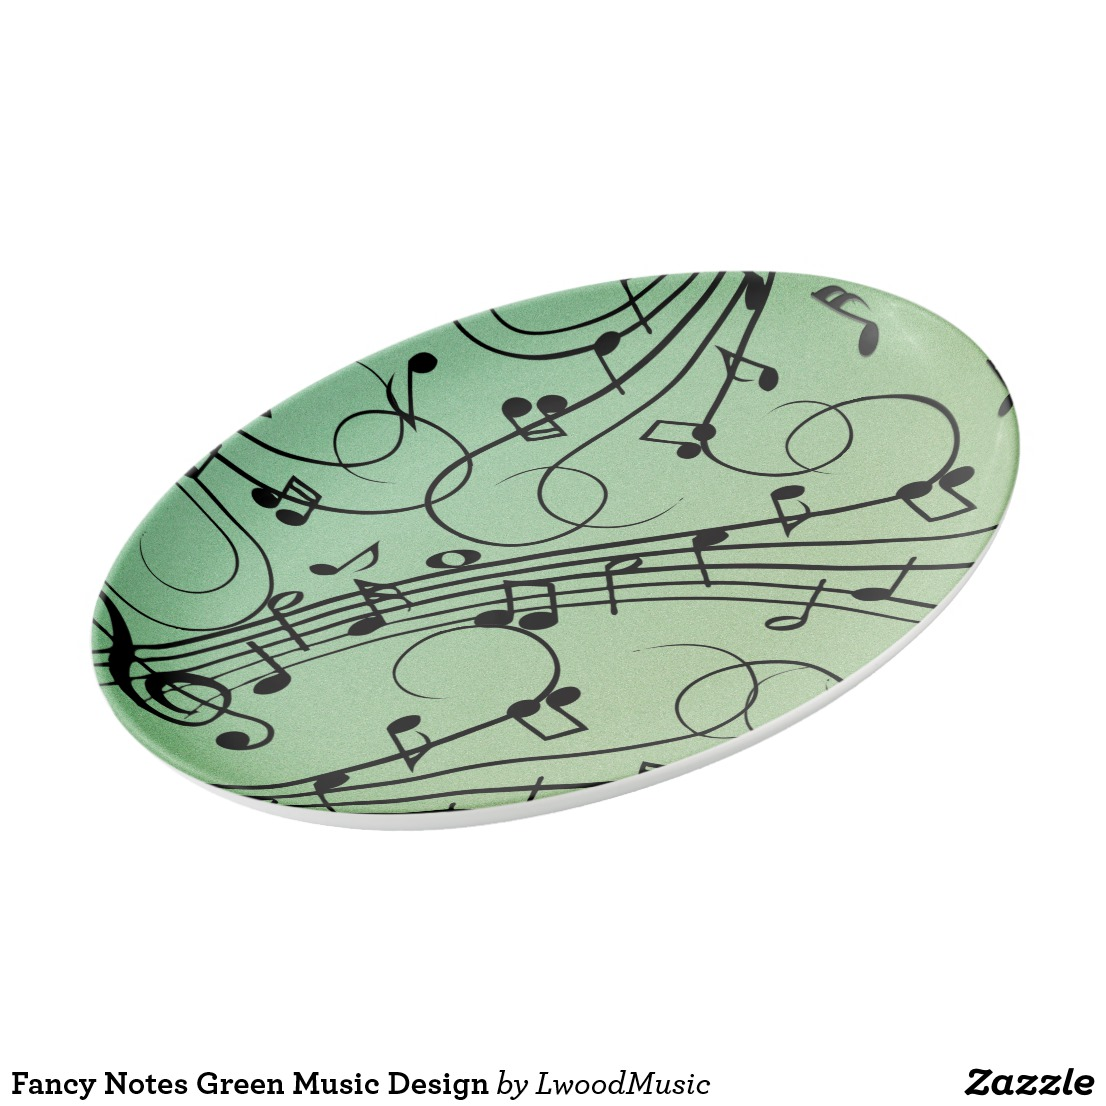 Fancy Notes Green Music Design Porcelain Serving Platter